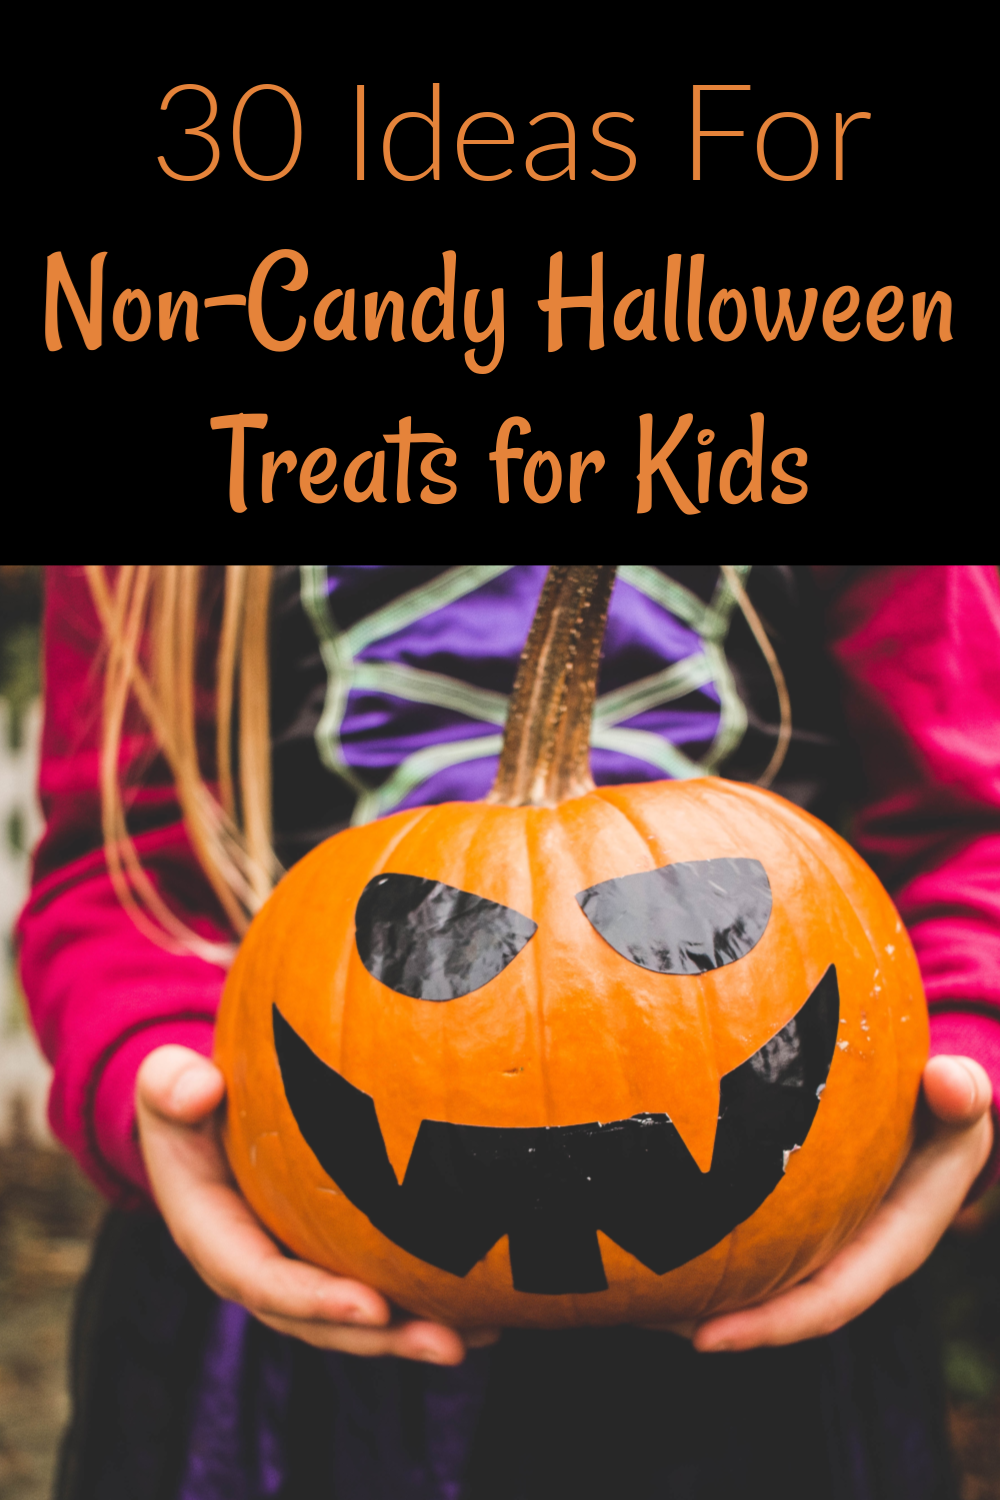 30 creative and fun alternatives to candy for trickor